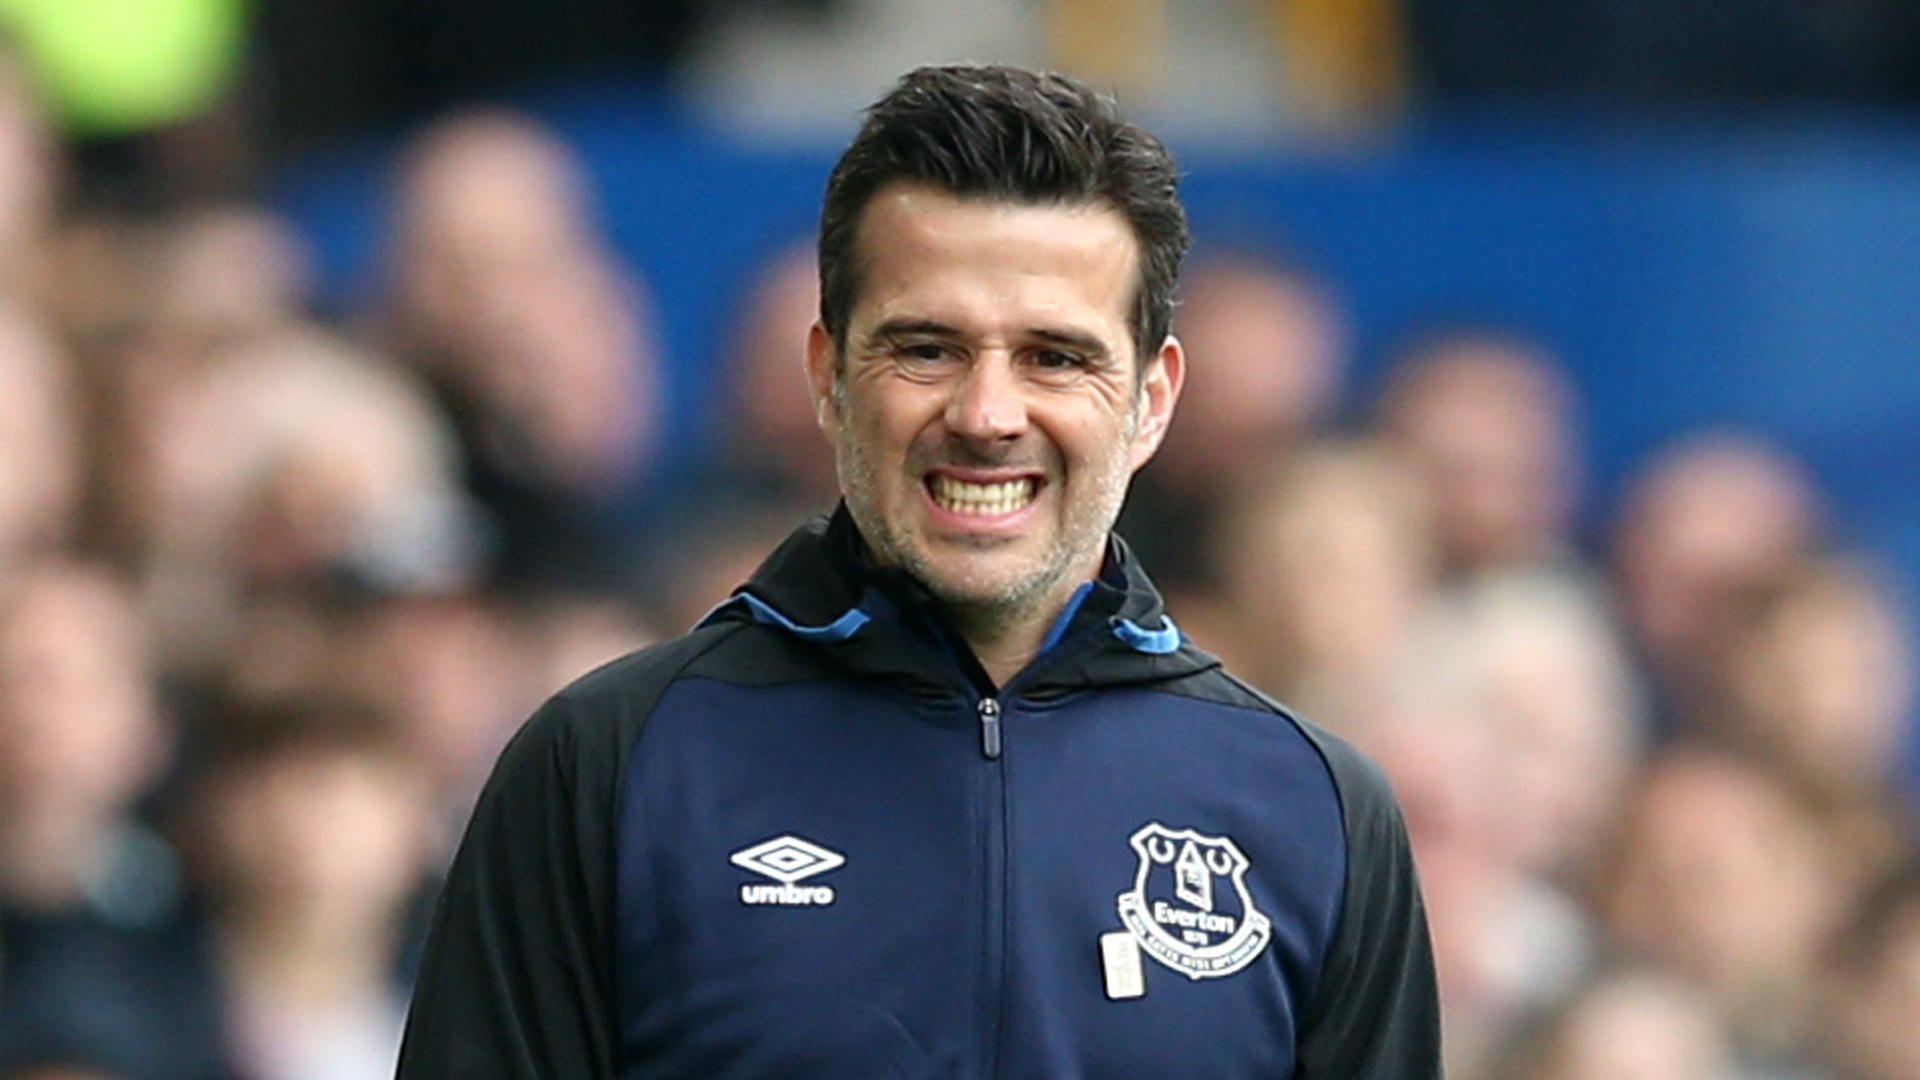 Manchester United face 'really tough' trip to Everton, warns Silva